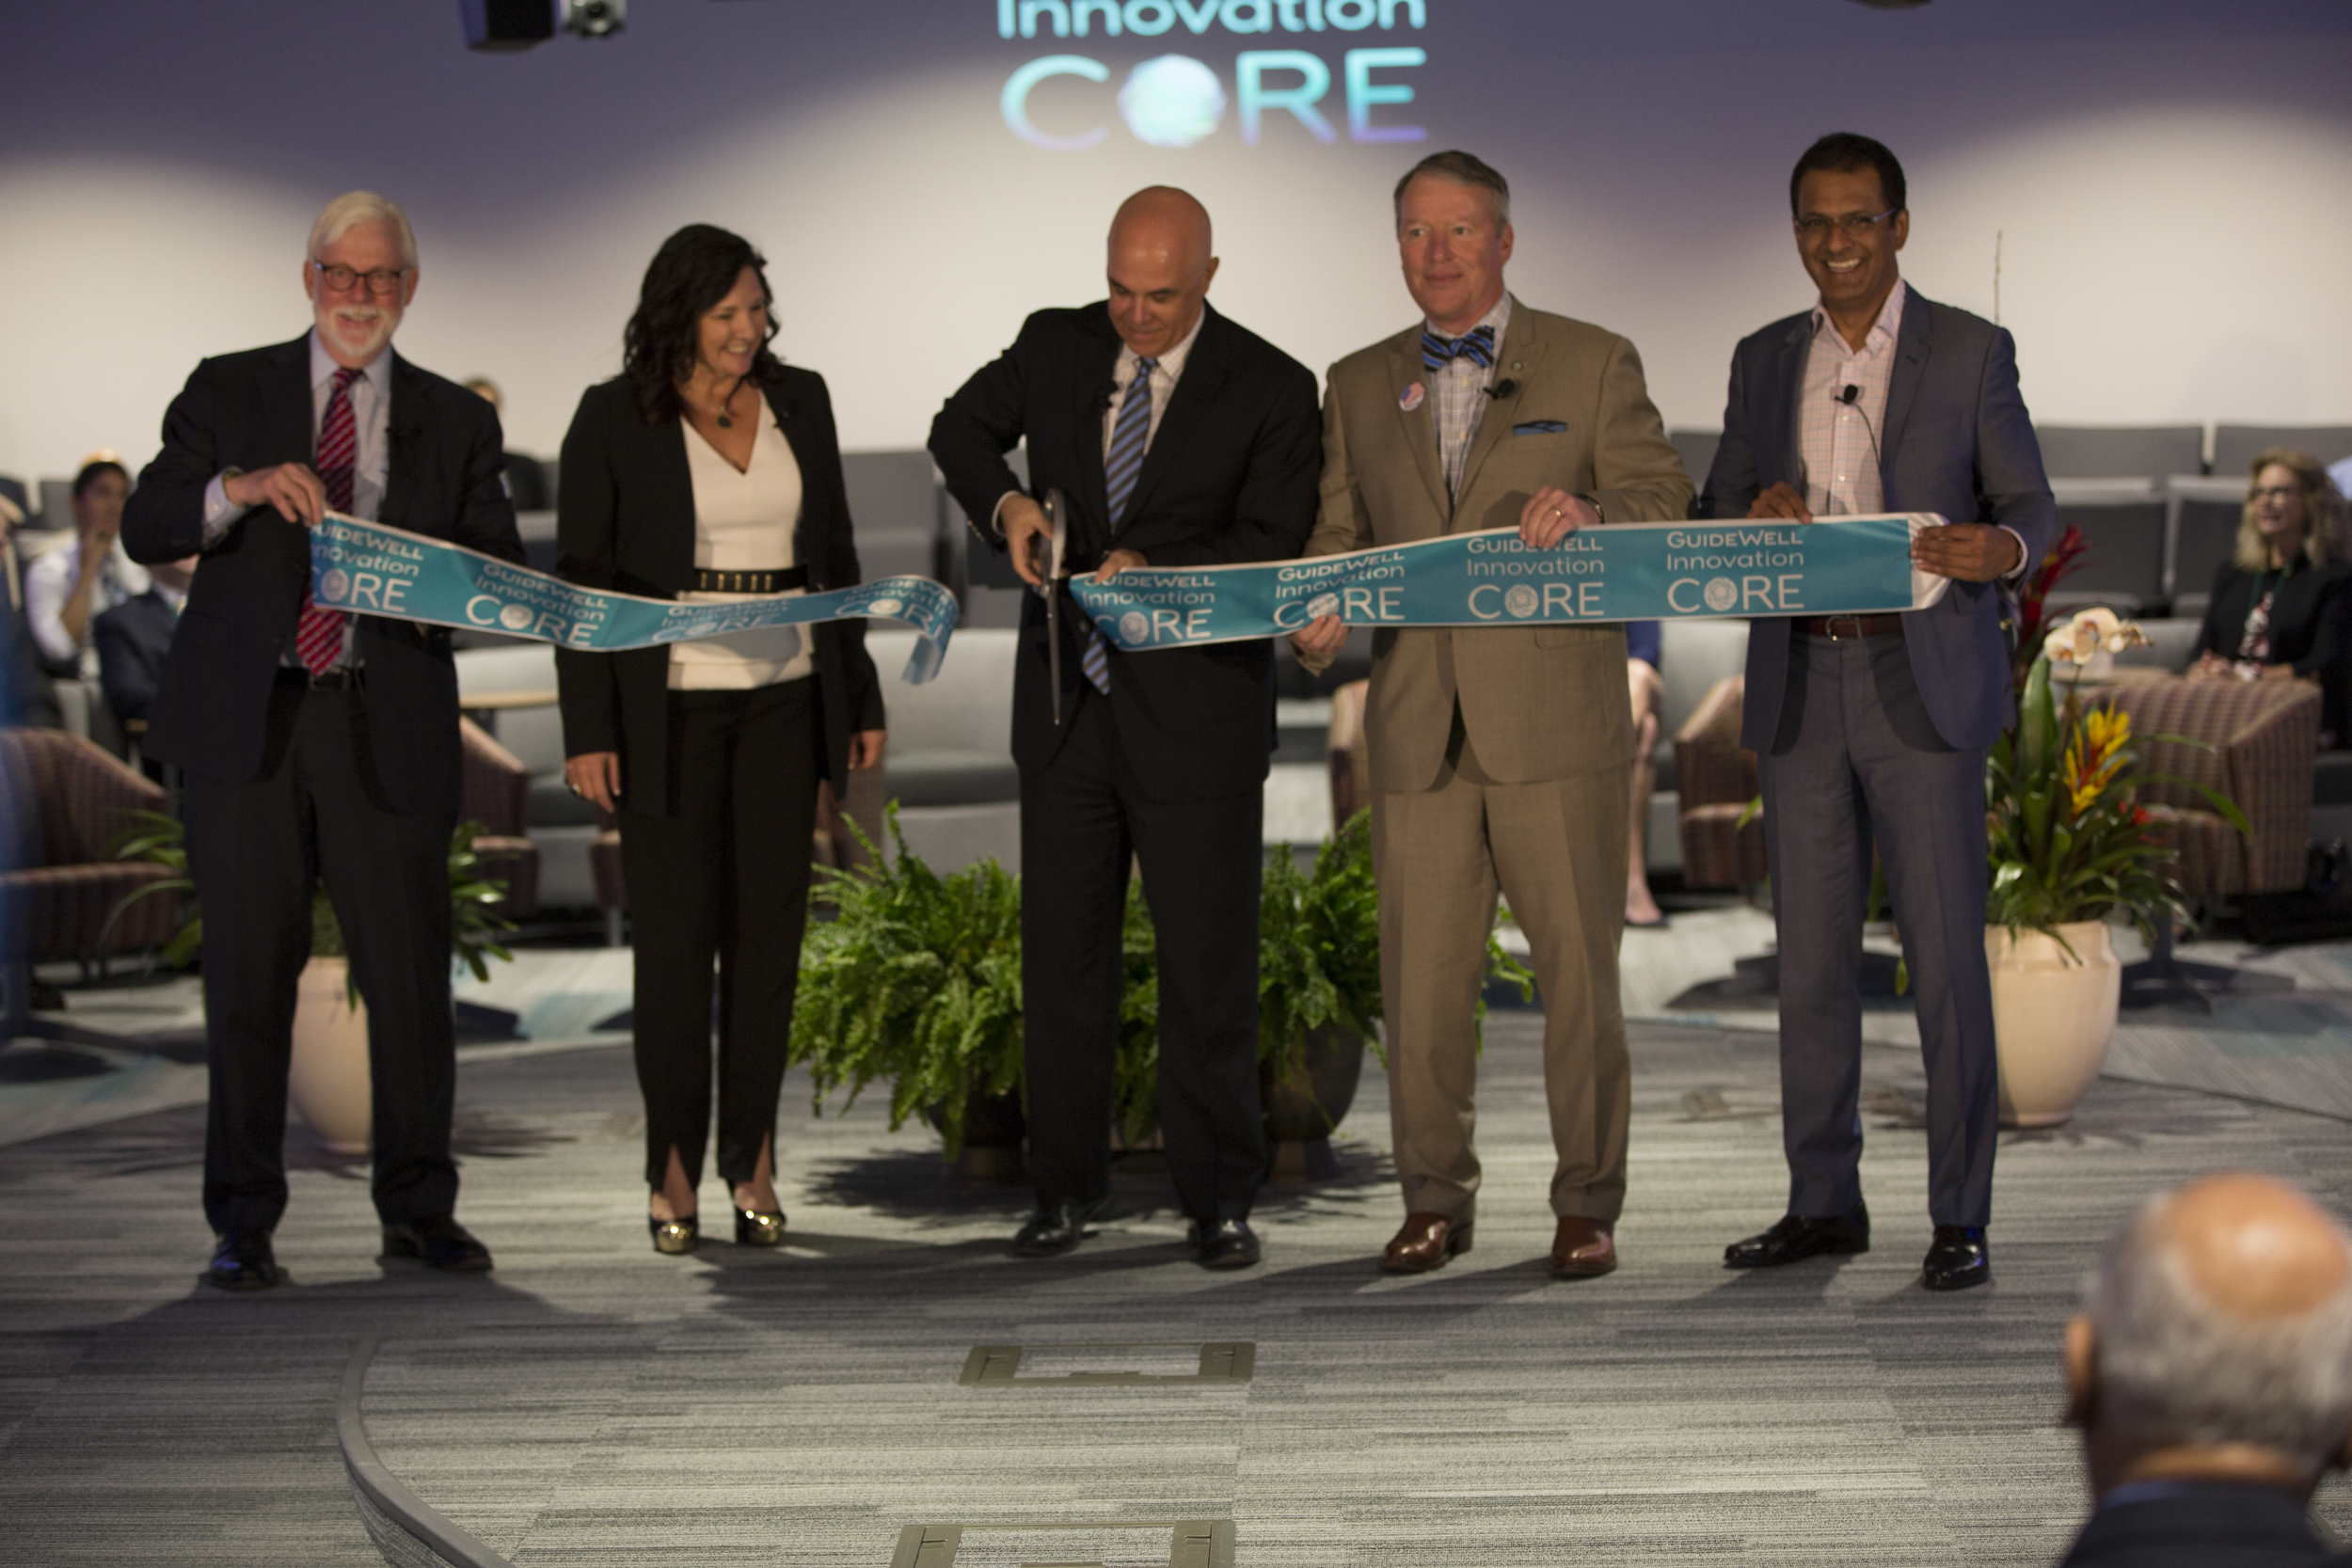 The GuideWell UST Global Innovation Center Opens